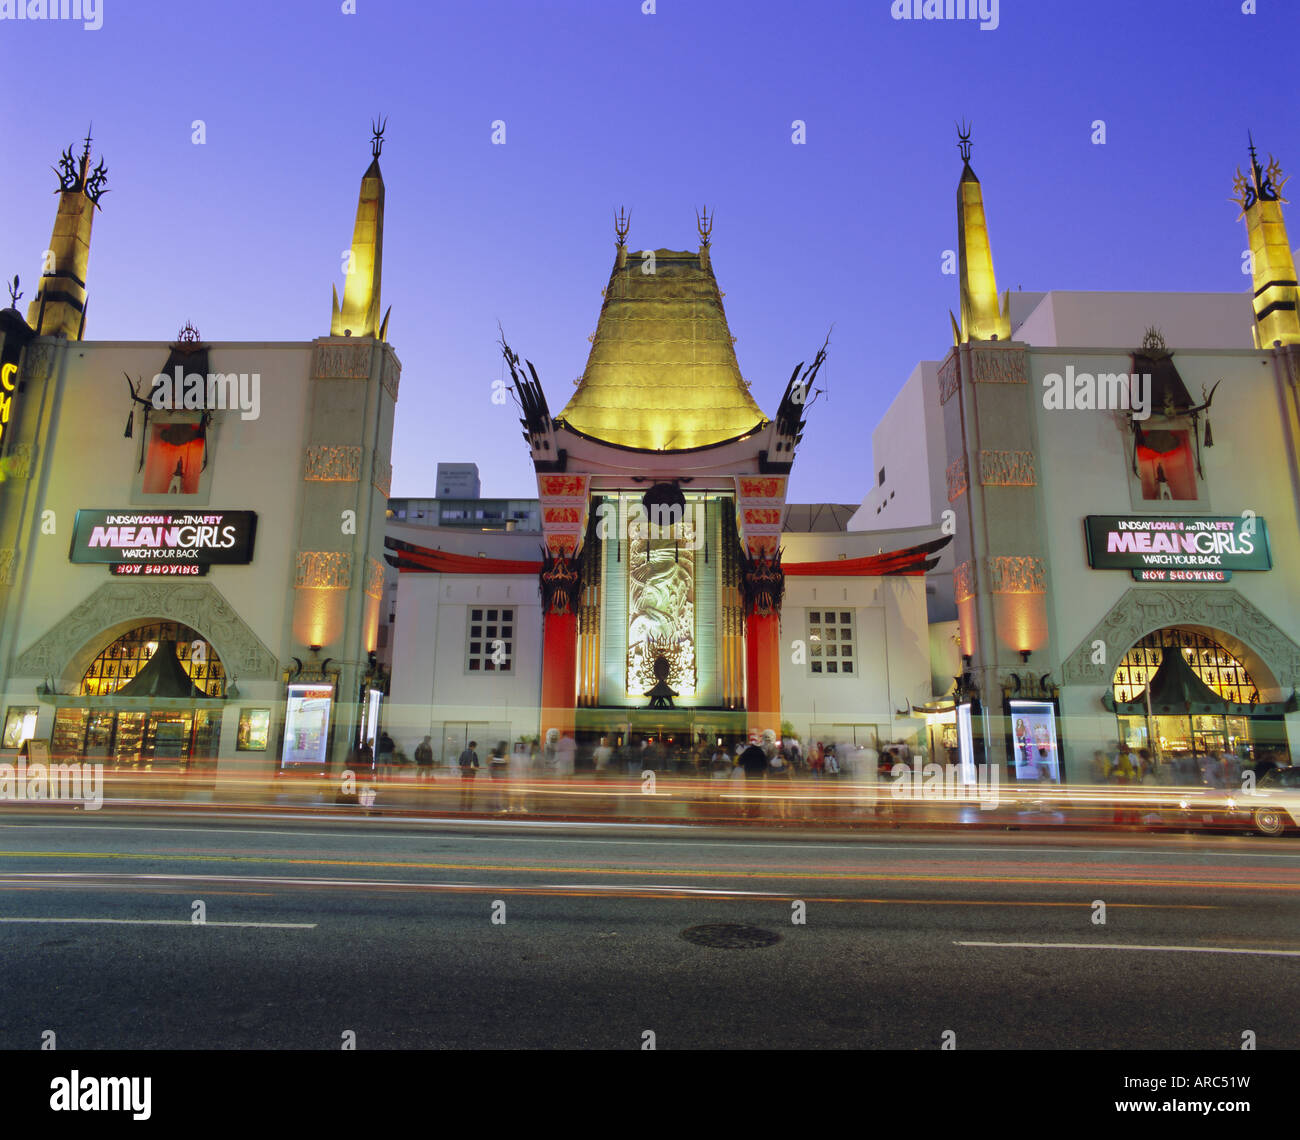 Graumann's Chinese Theater, Los Angeles, California, USA, North America - Stock Image